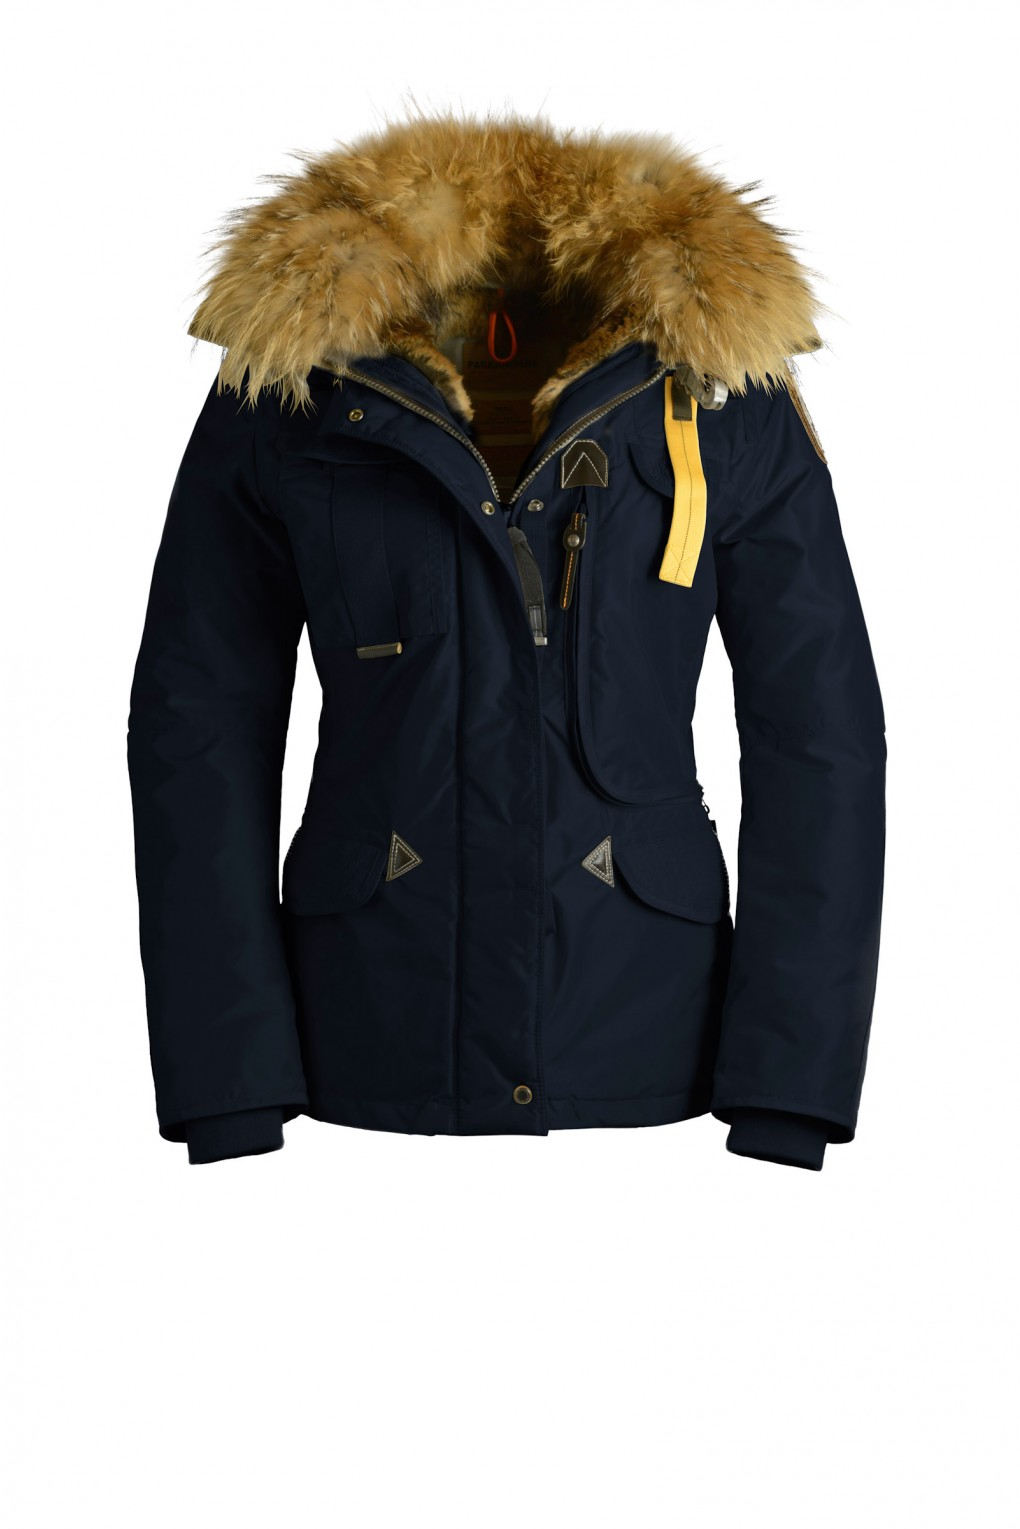 parajumpers DENALI woman outerwear Navy